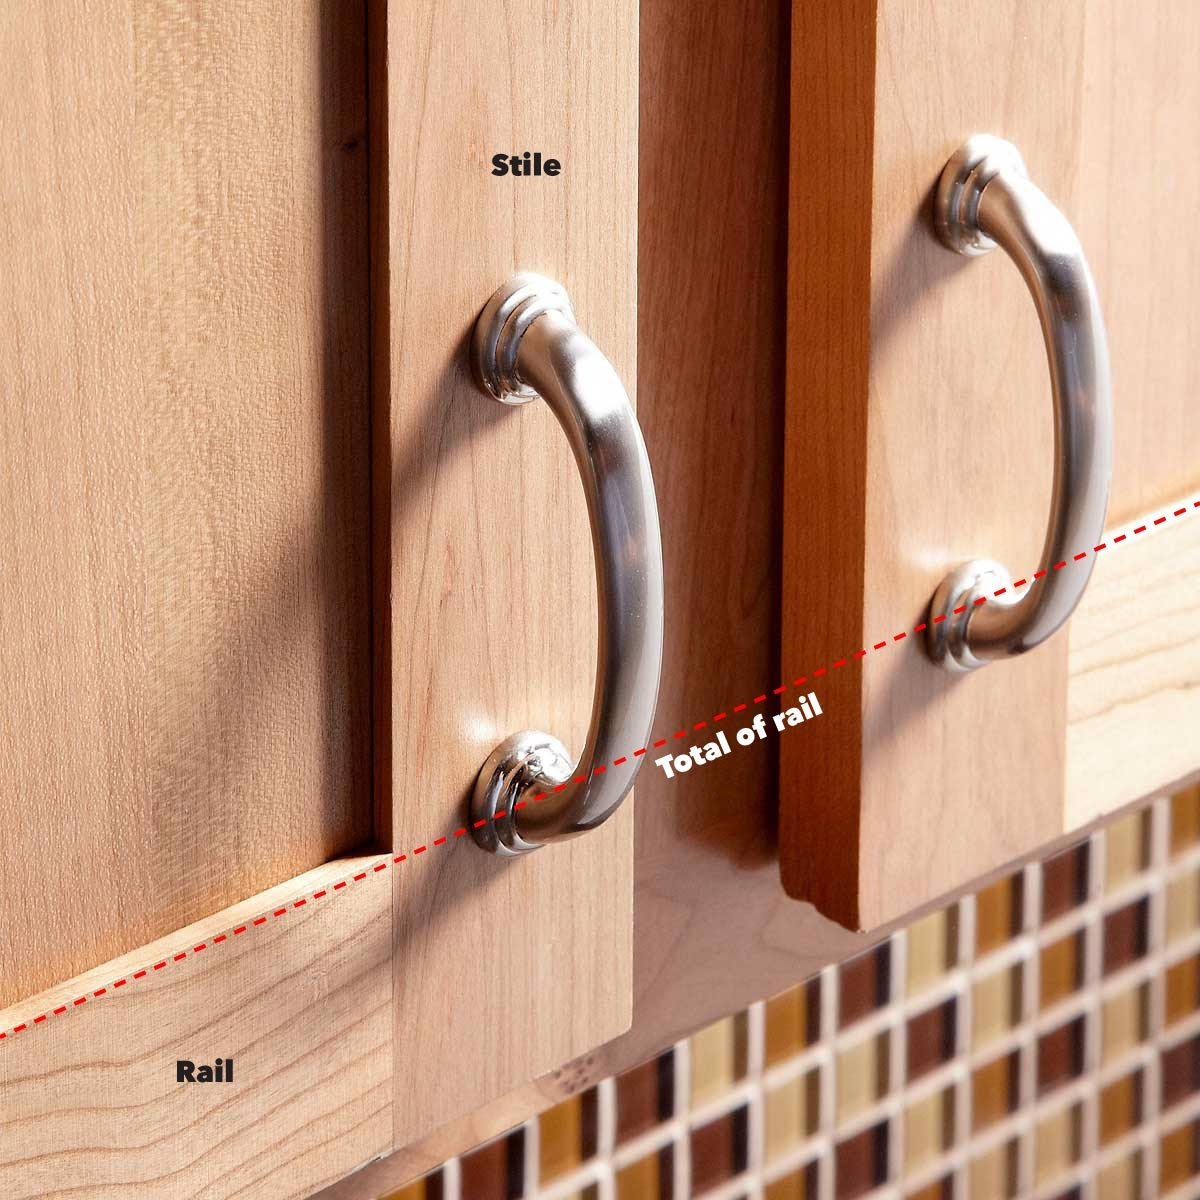 Use the Door Rail as a Guide